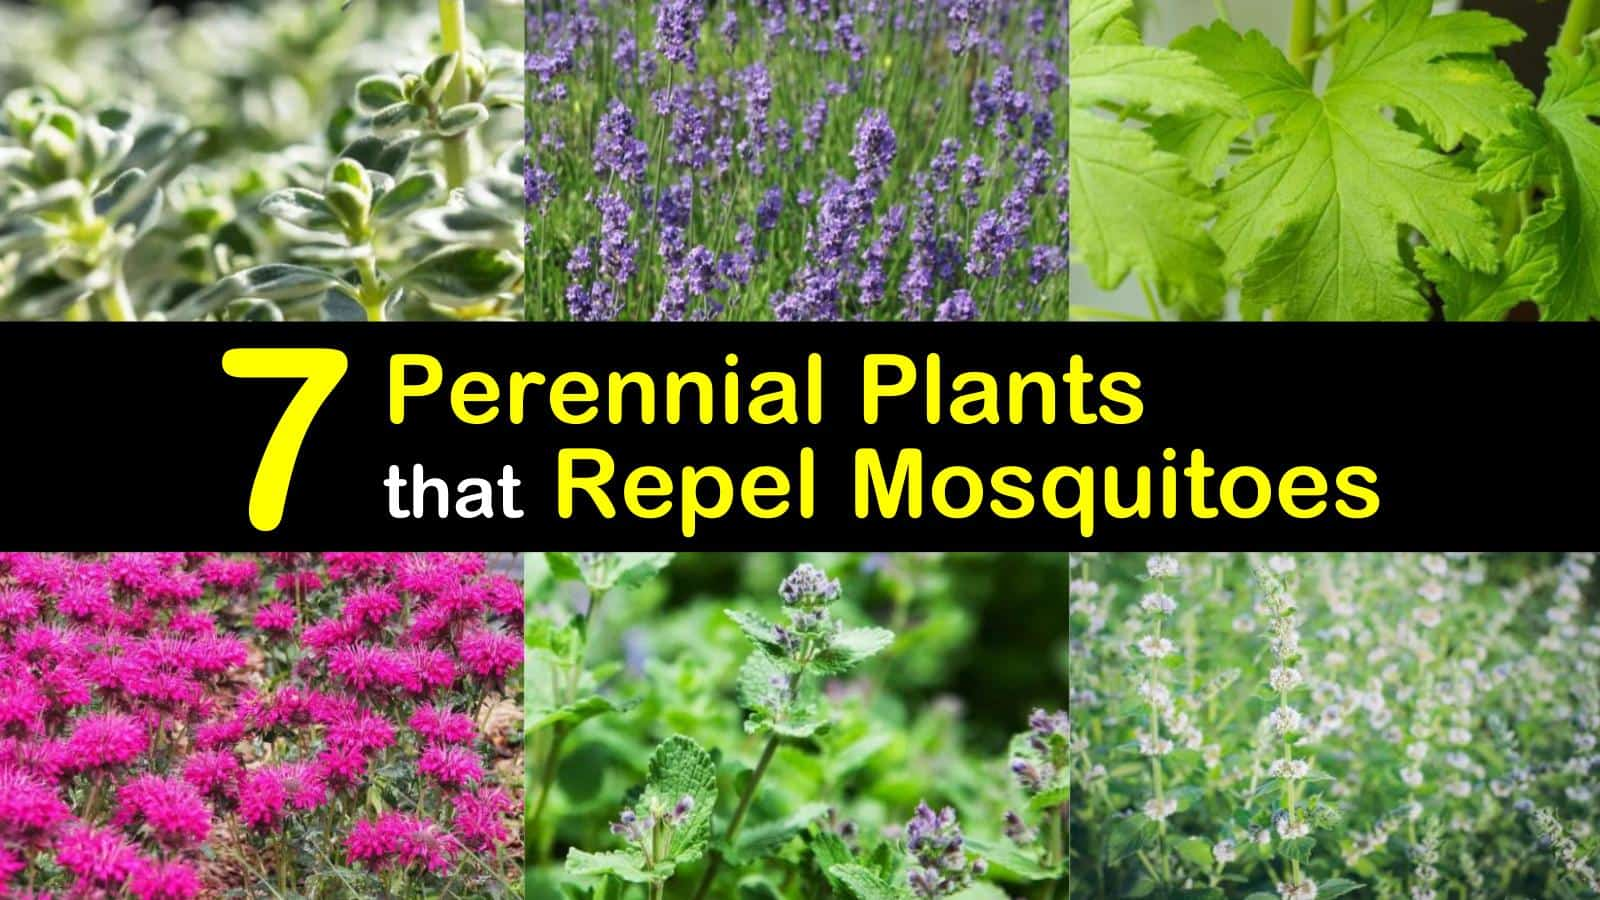 perennial plants that repel mosquitoes titleimg1